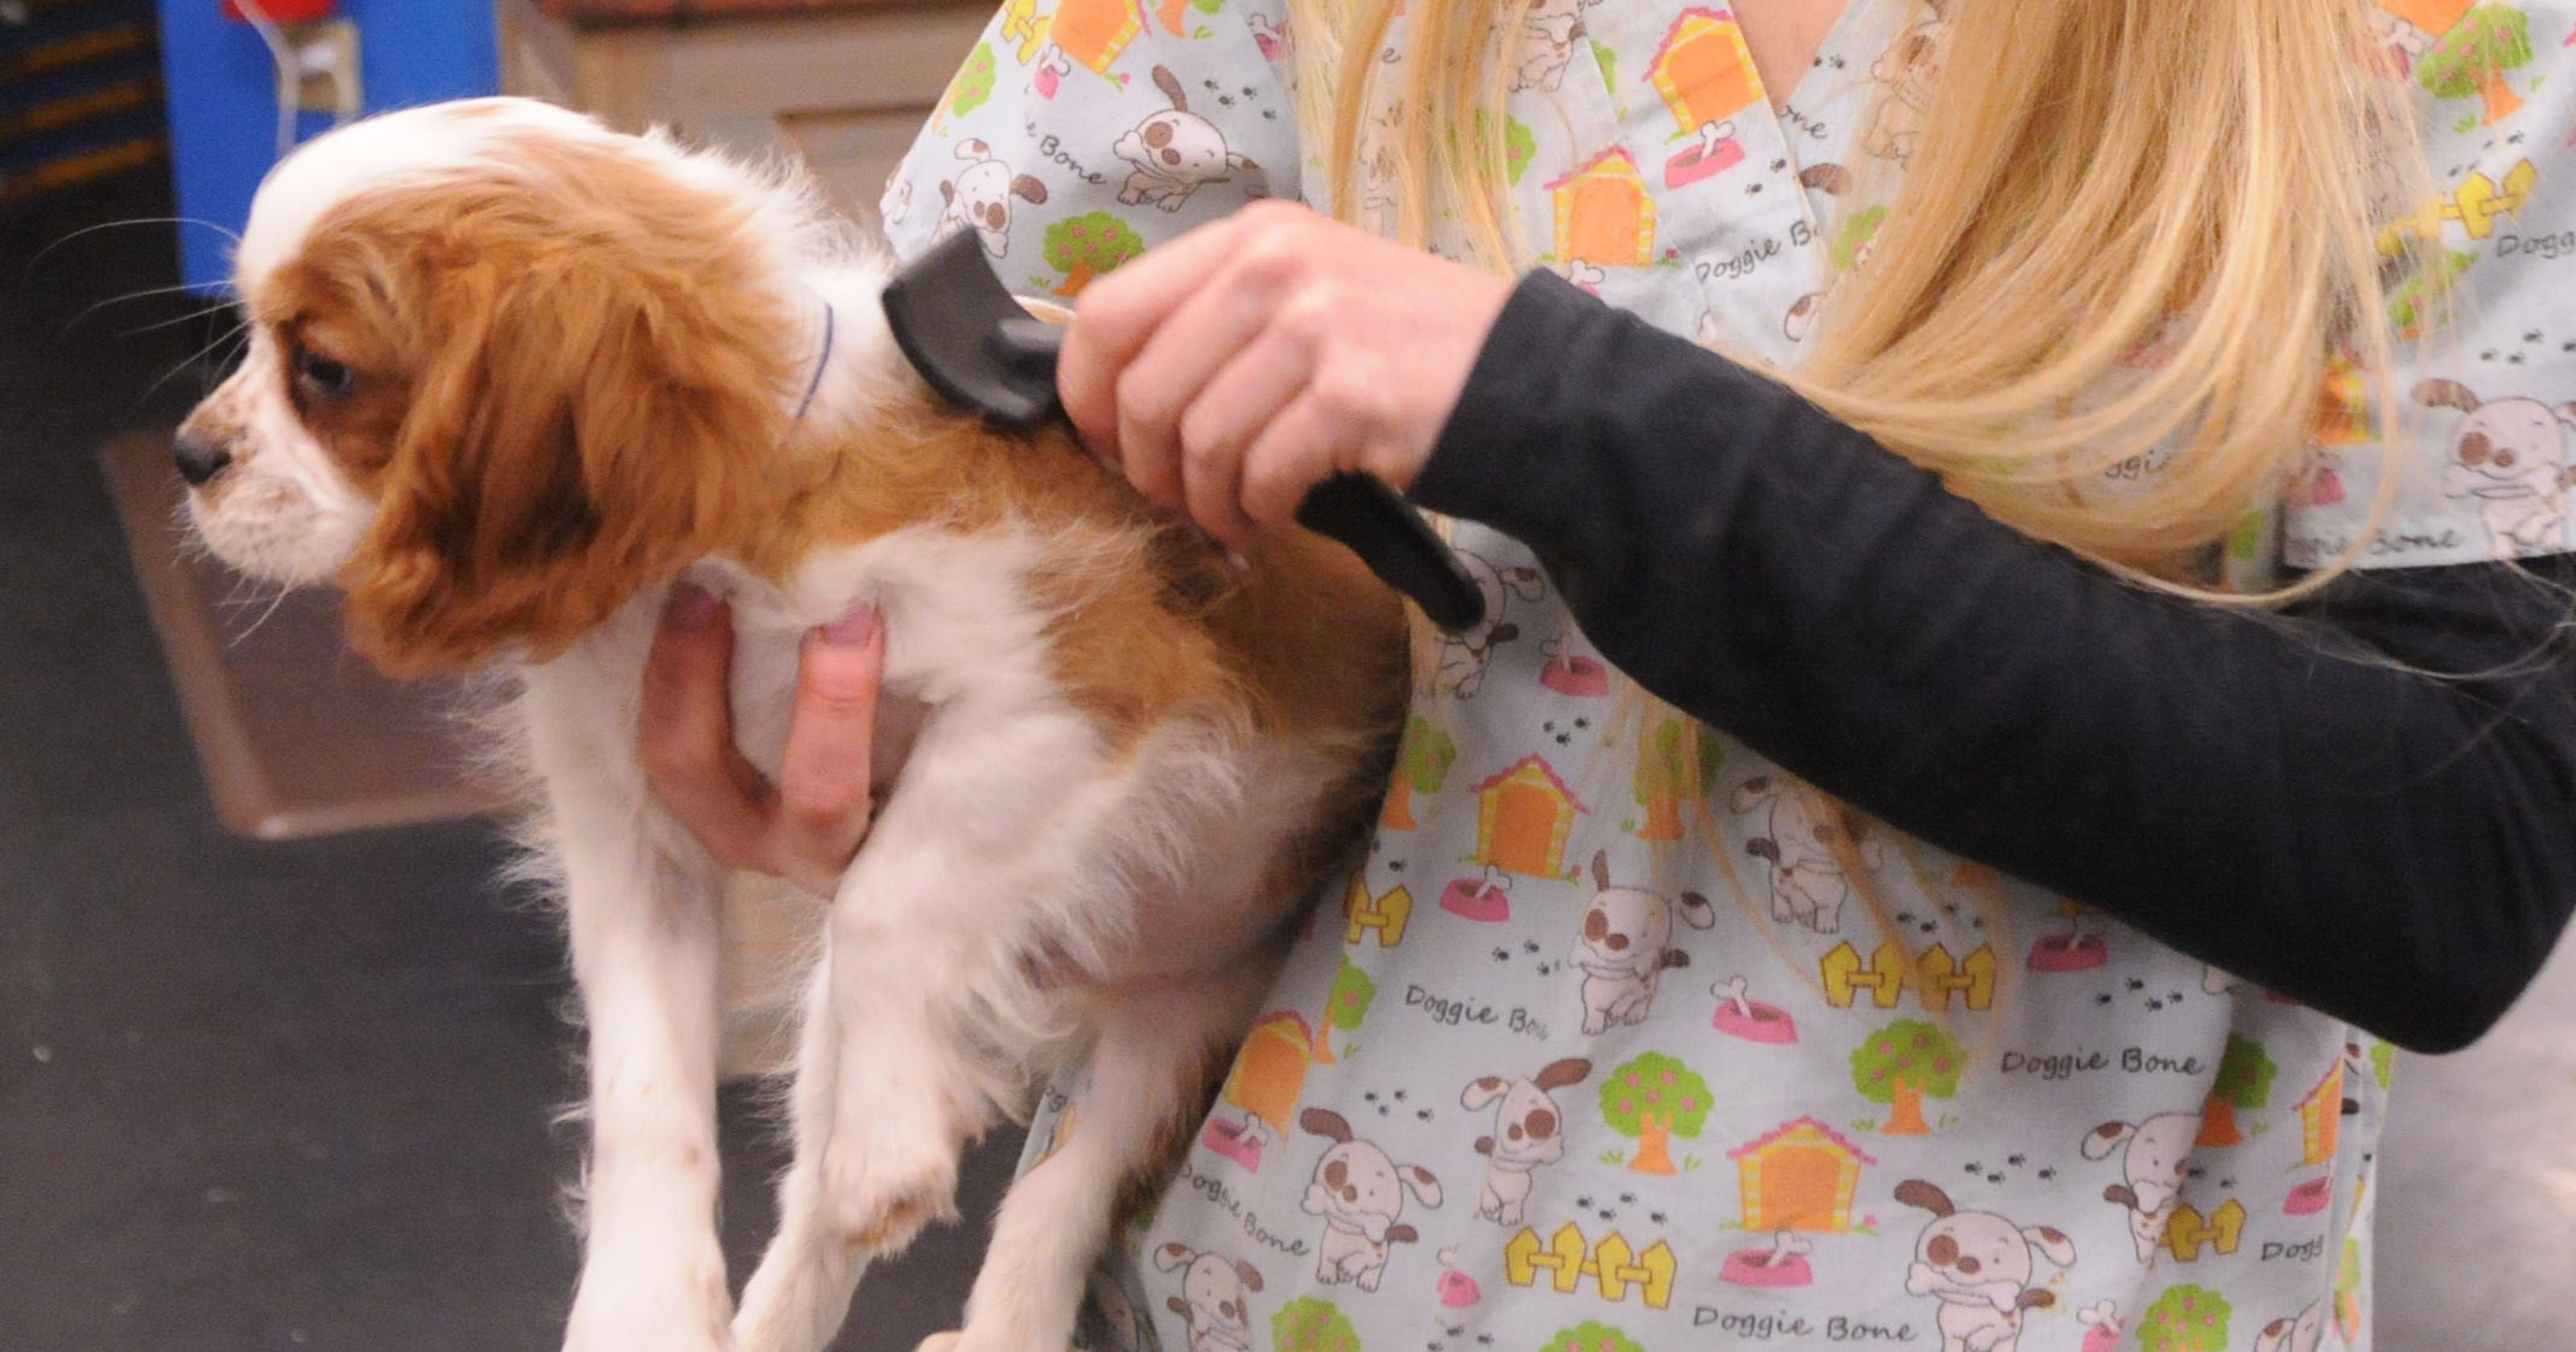 Puppy 'mills' ship to stores here in poorly regulated industry